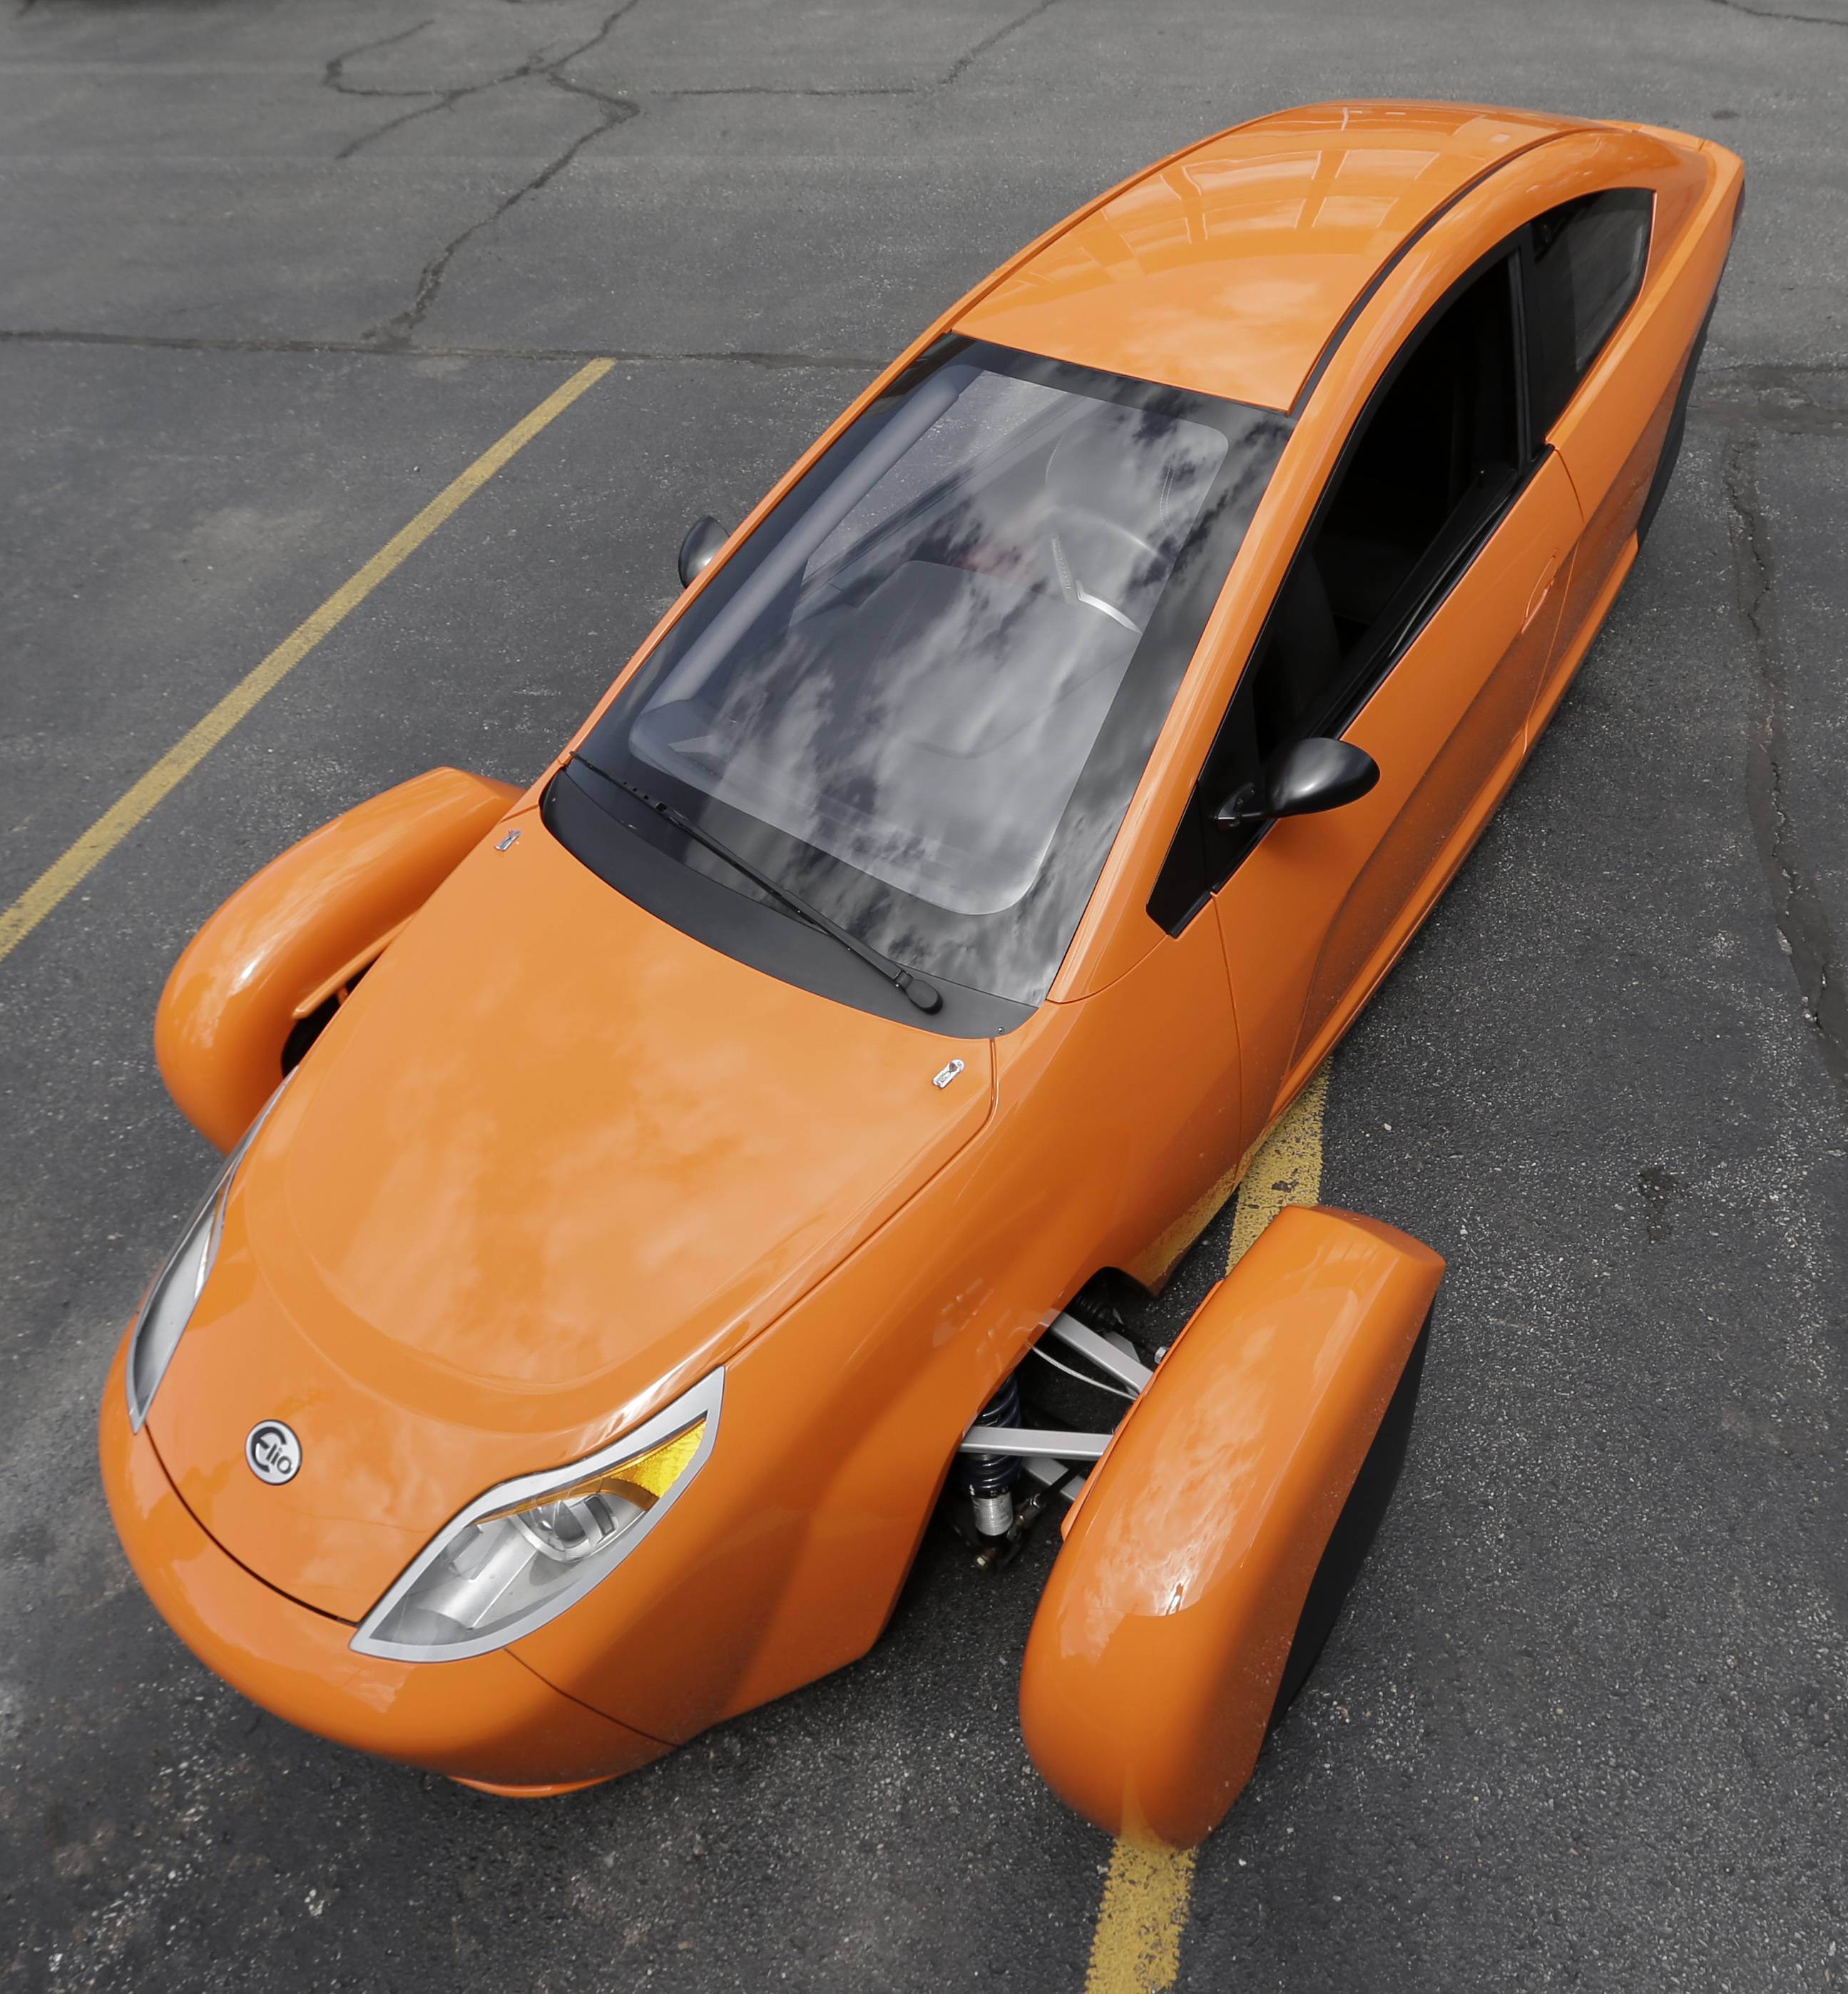 The Elio, a three-wheeled prototype vehicle, in Royal Oak, Mich